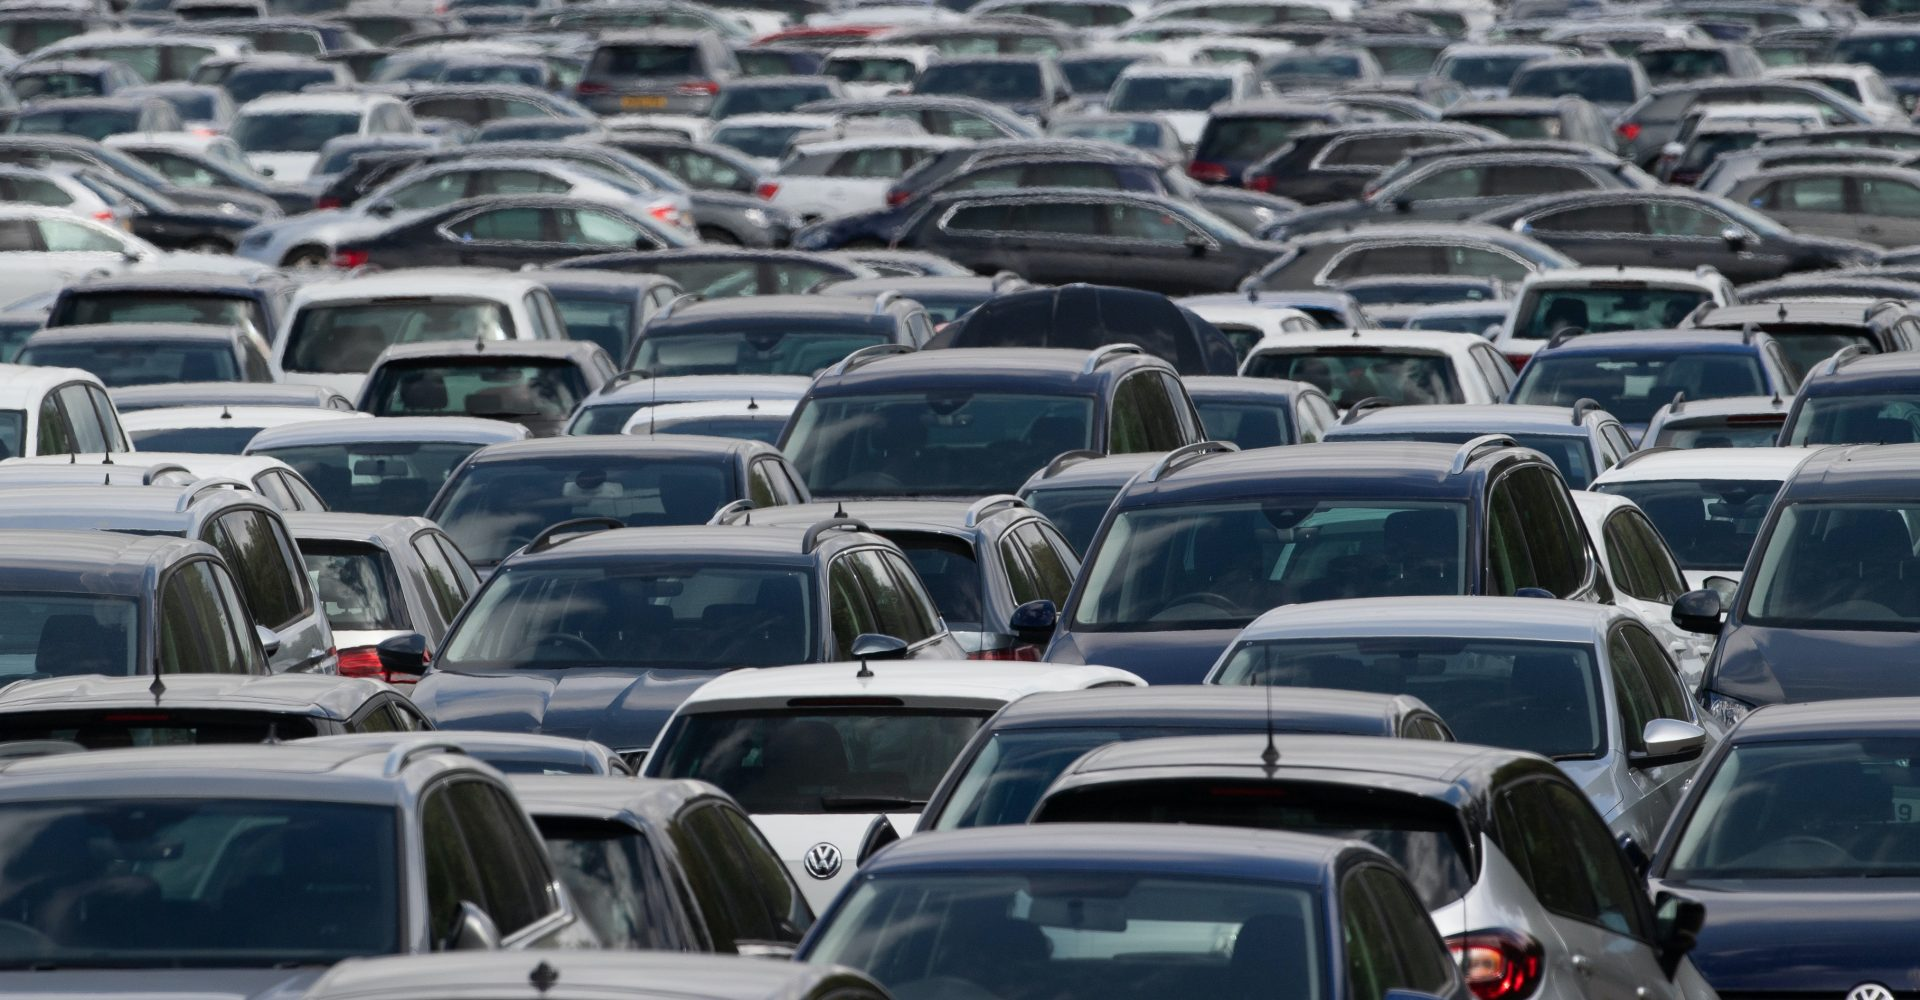 Underlying demand for used cars is 'strong', says Auto Trader boss